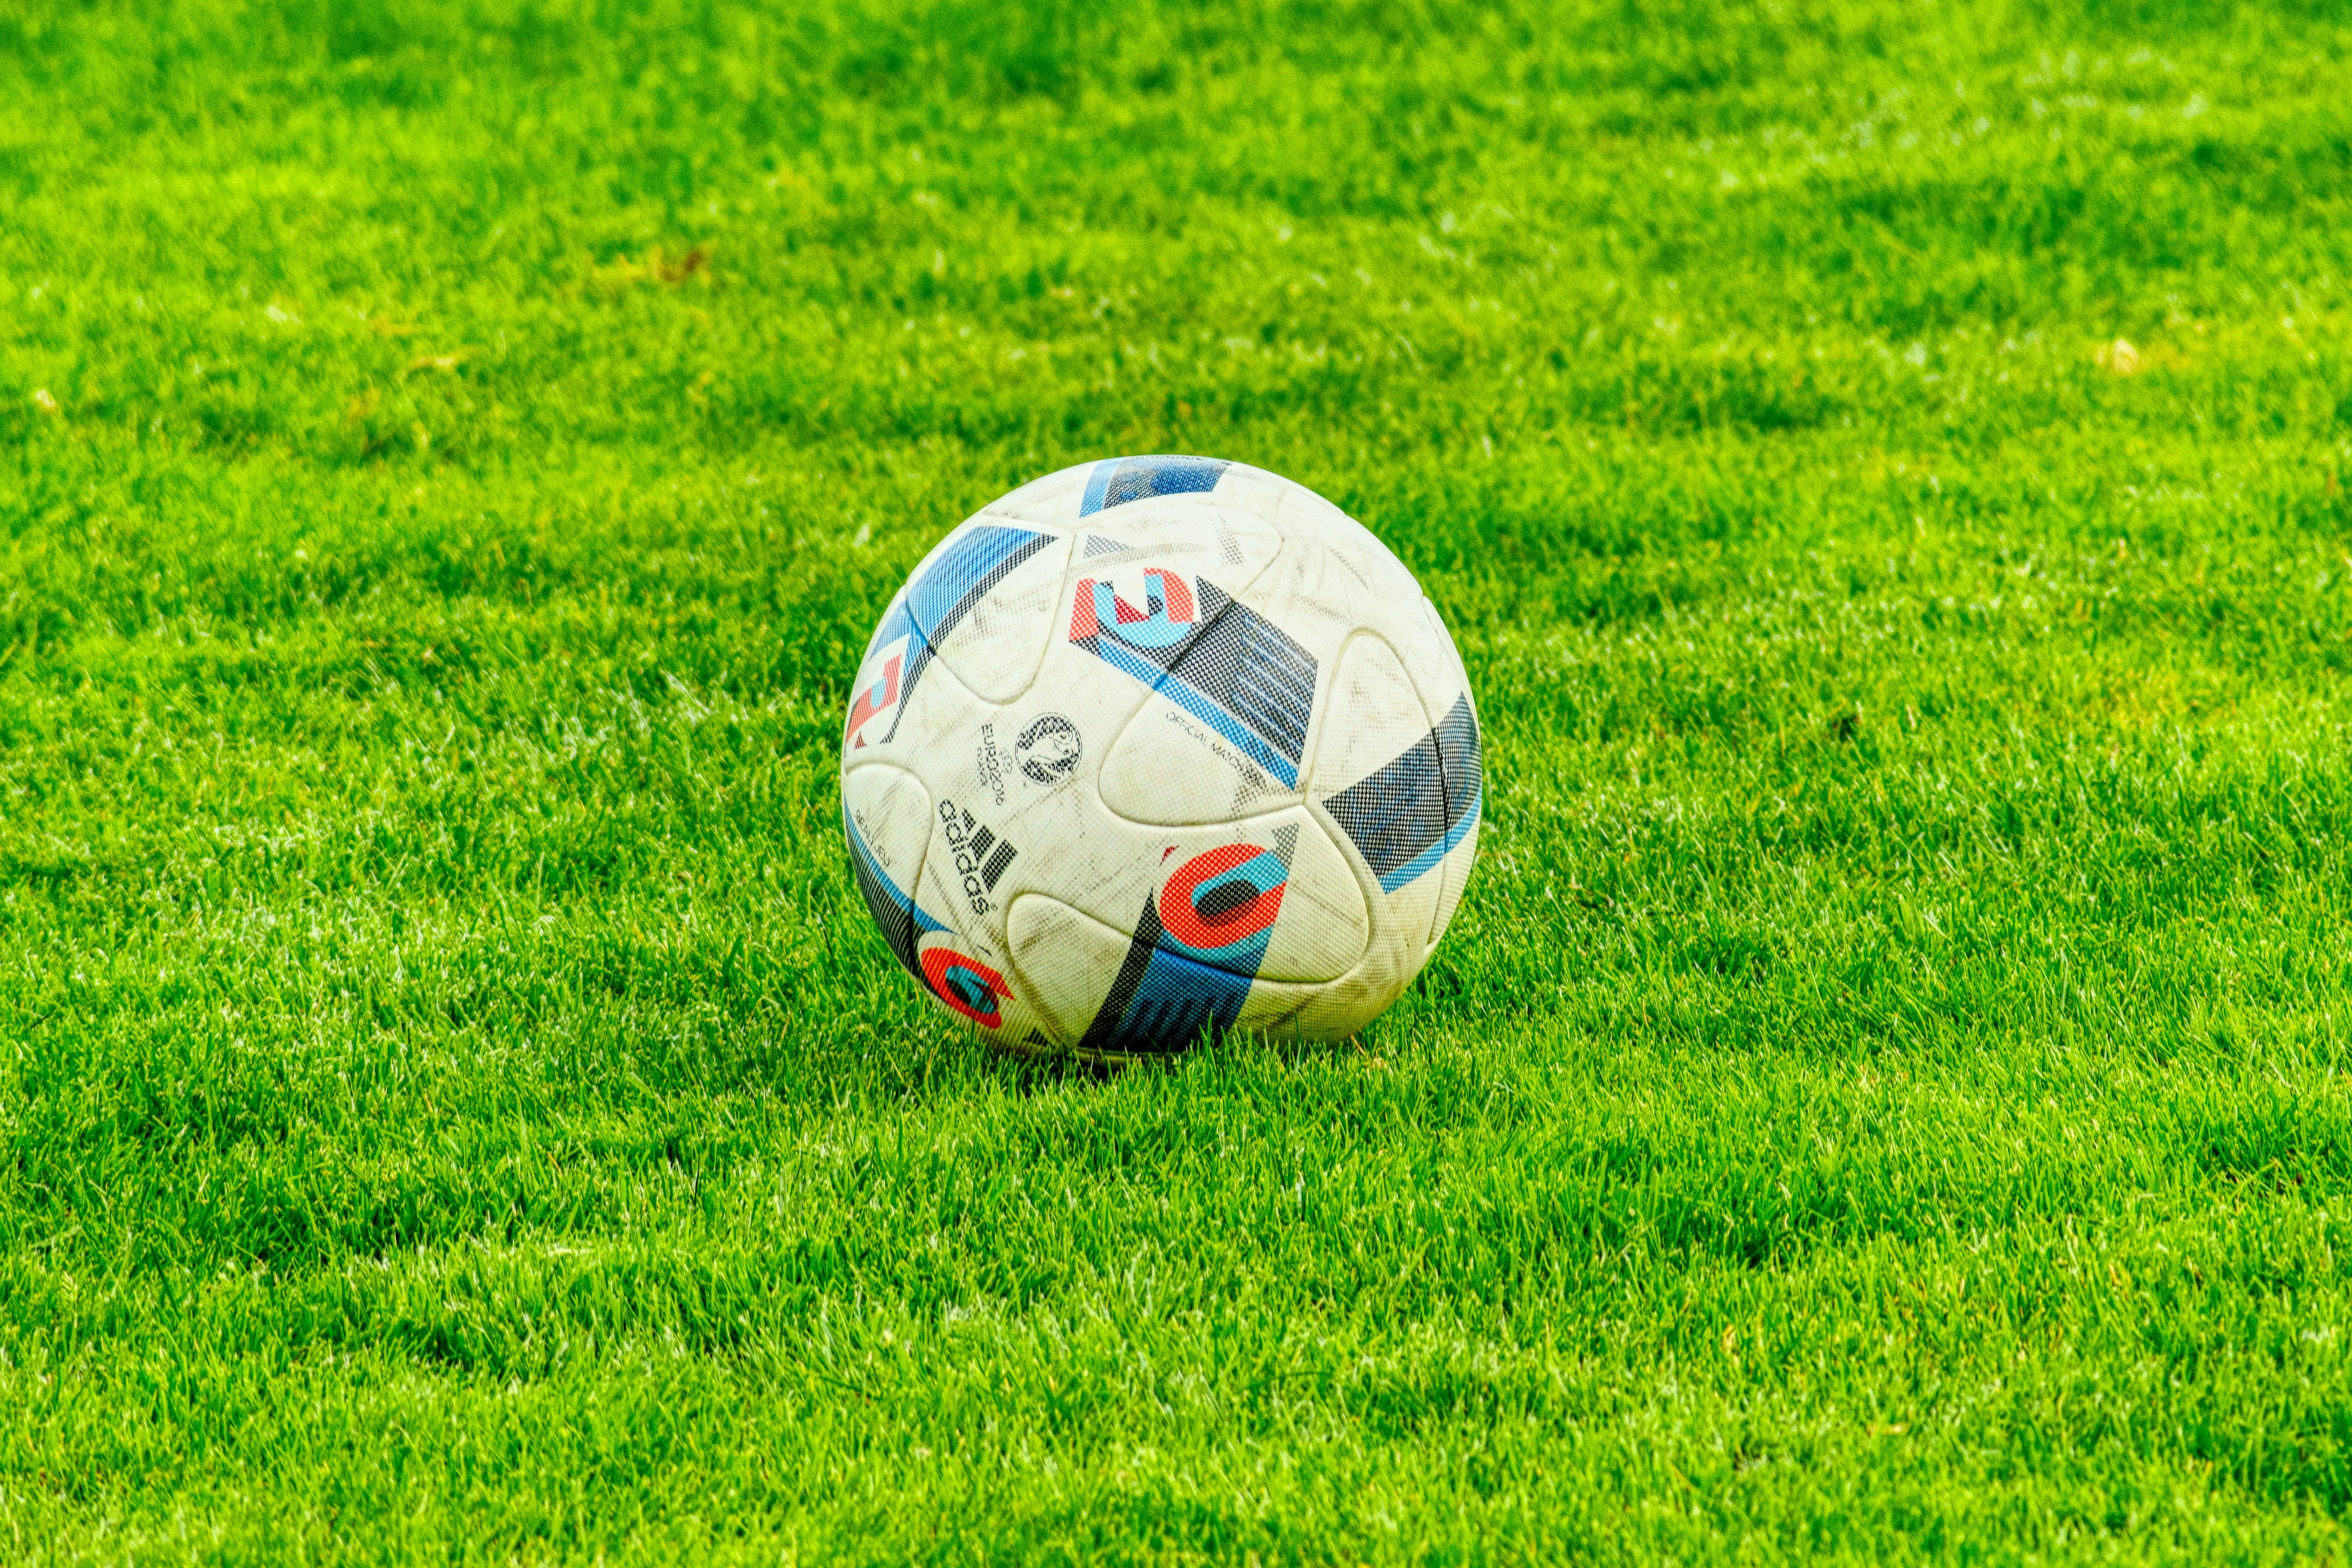 139538 download wallpaper Football, Sports, Grass, Ball, Lawn screensavers and pictures for free